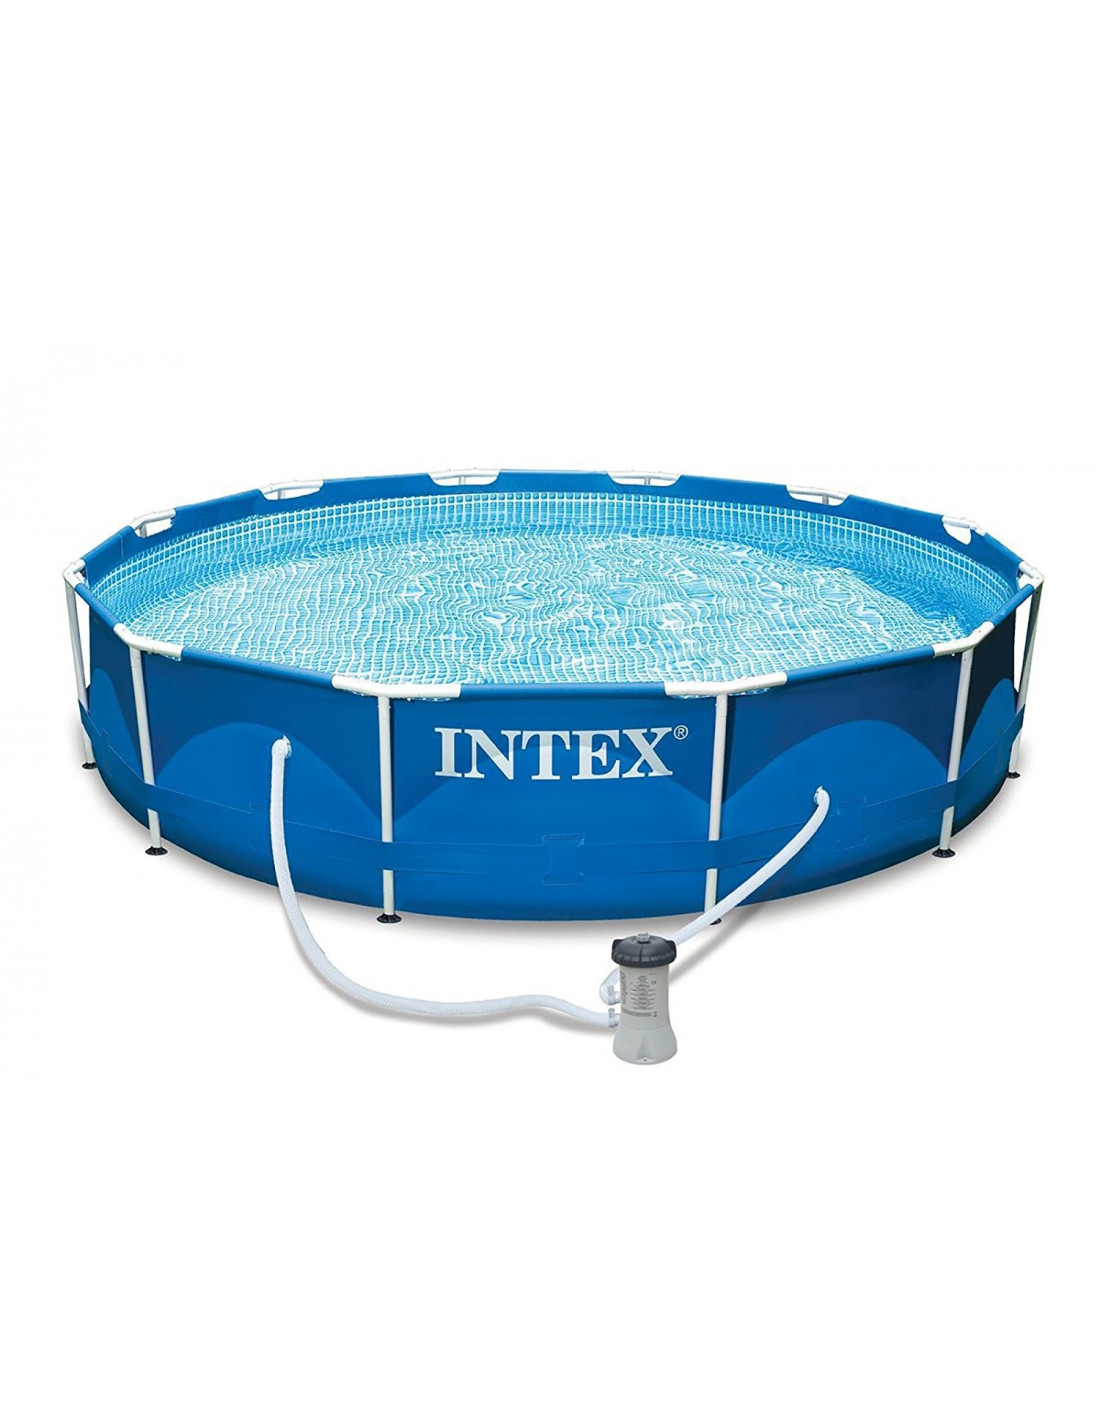 Intex piscine tubulaire ronde metal frame 366 x 76 cm for Piscine intex tubulaire